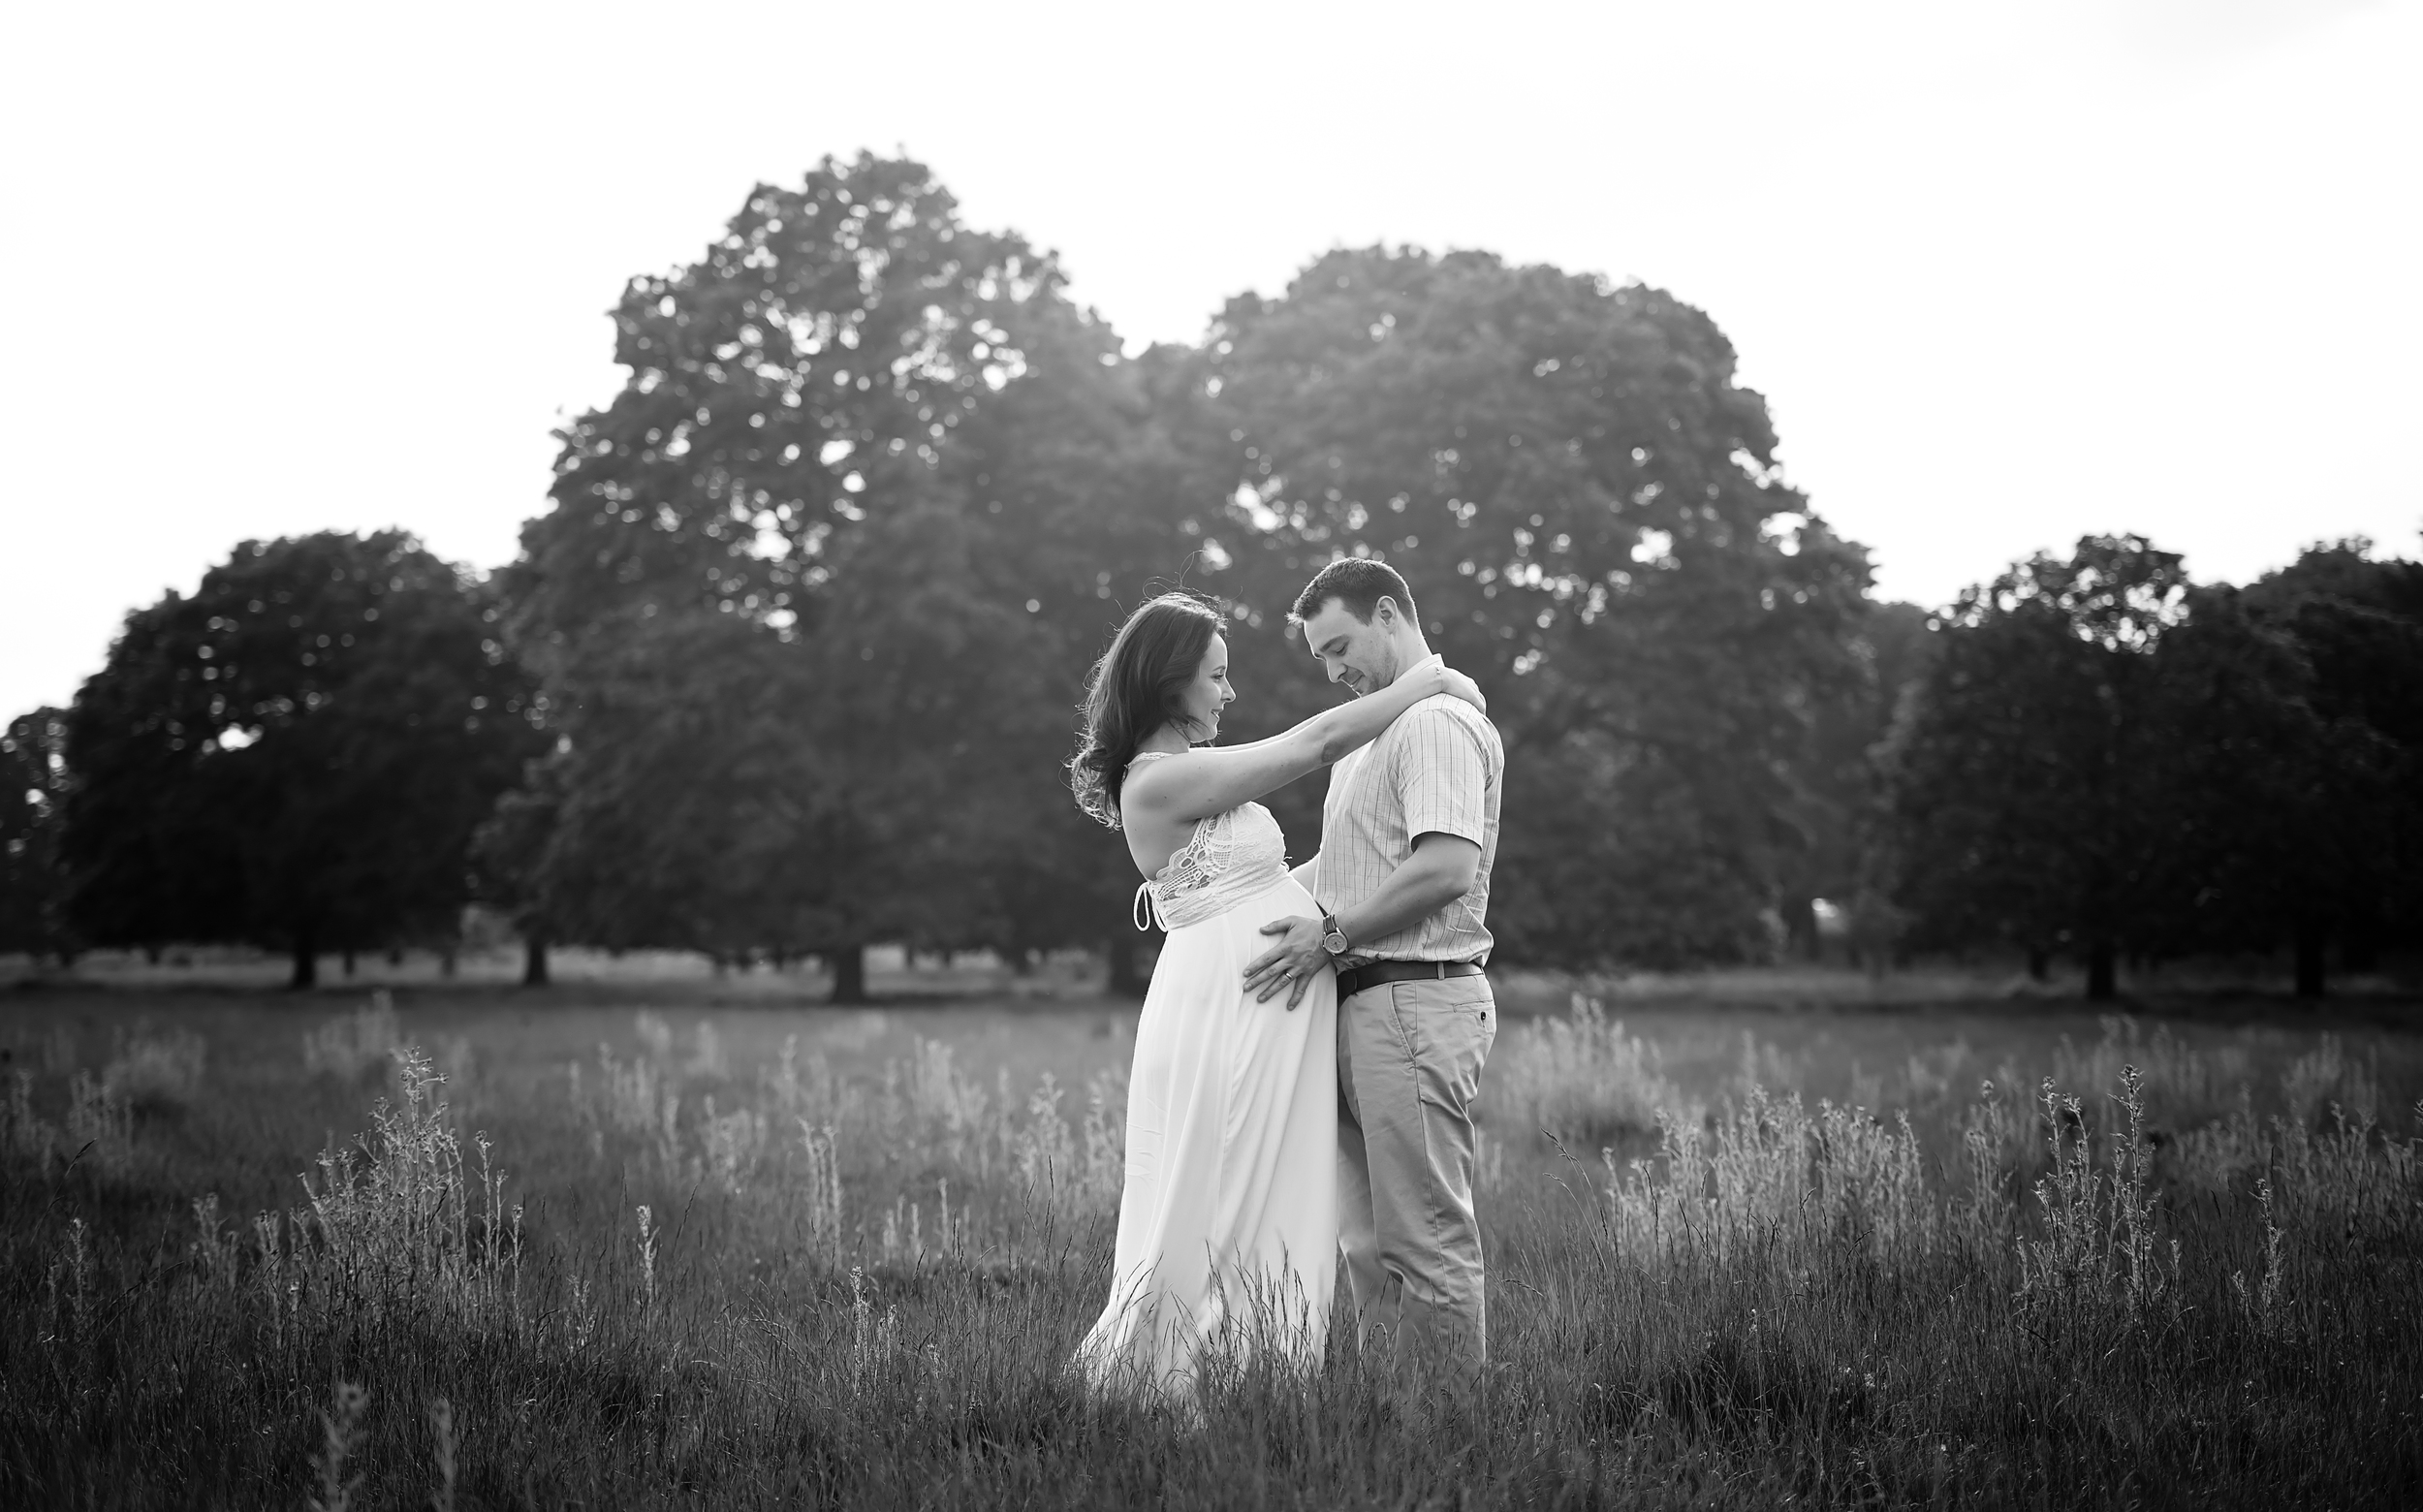 Black and white portrait photography | London